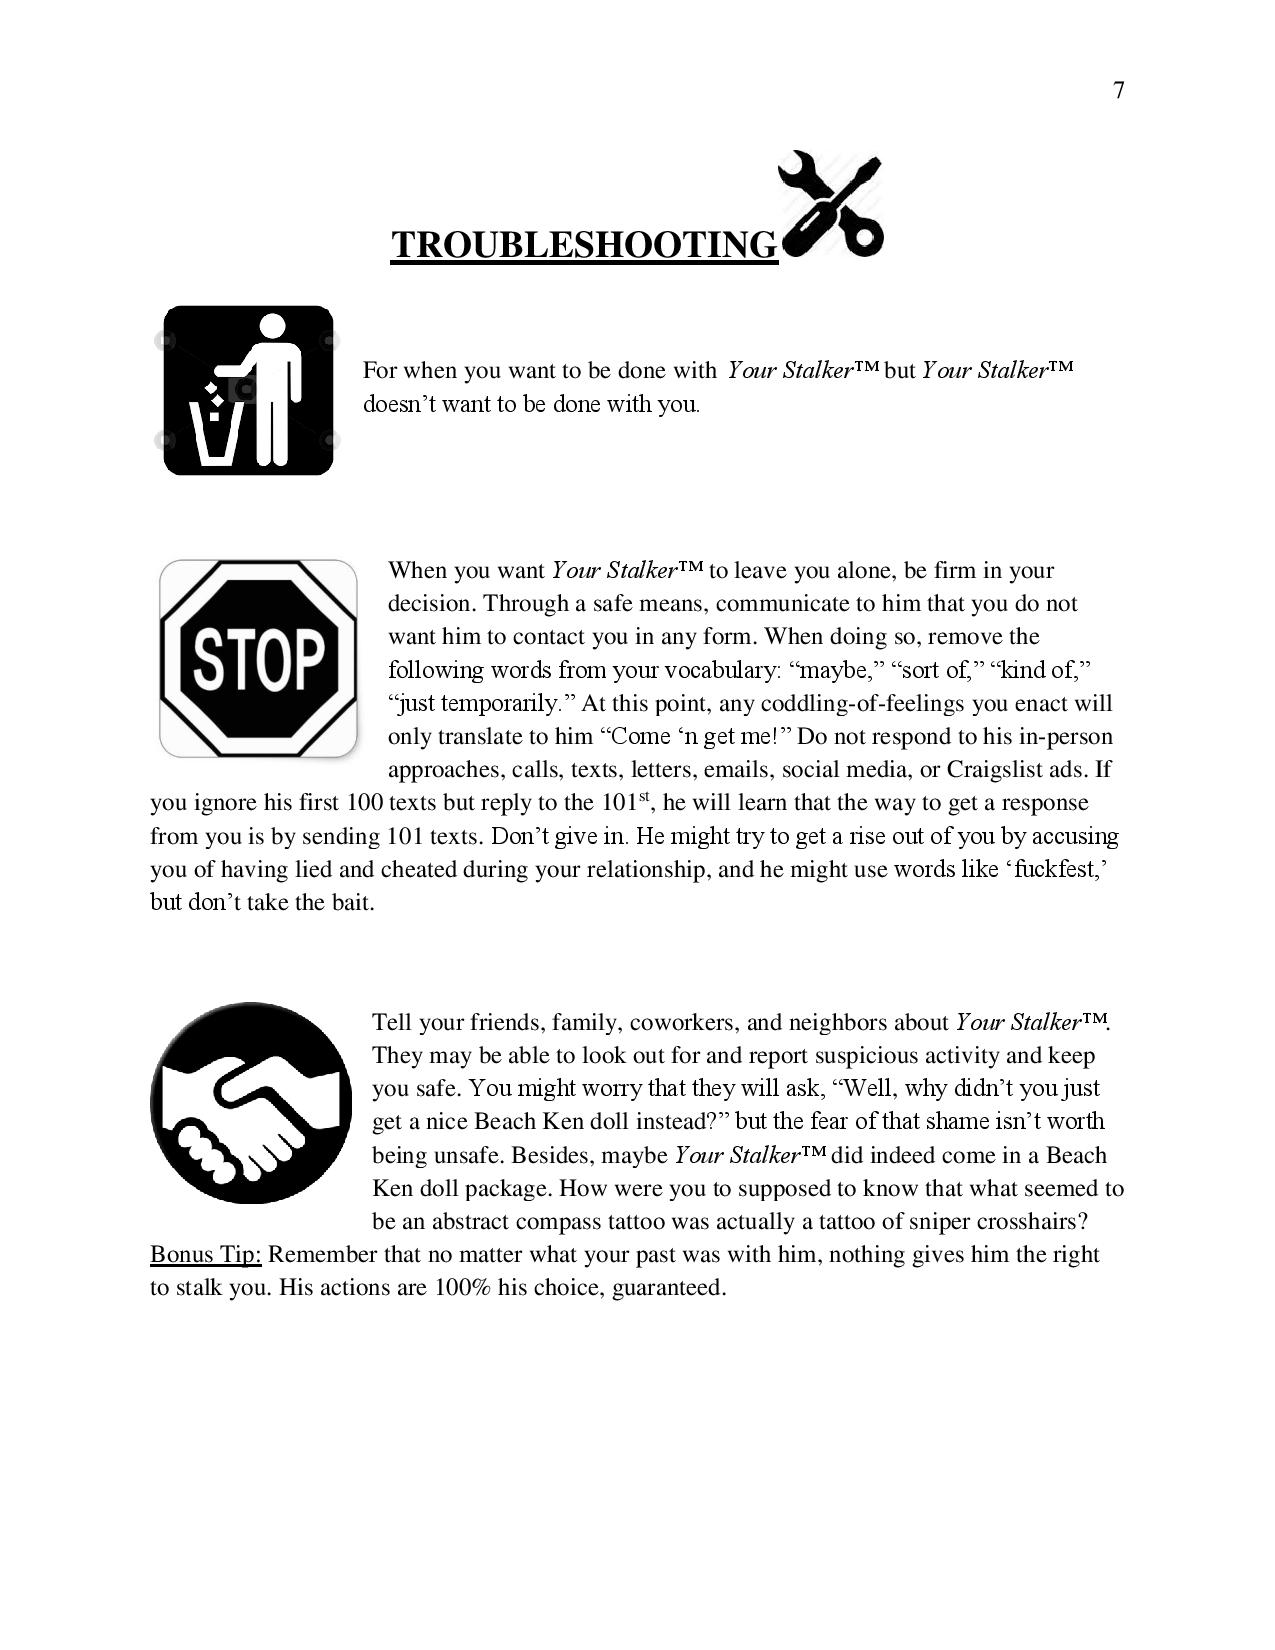 Your Stalker Manual-page-007